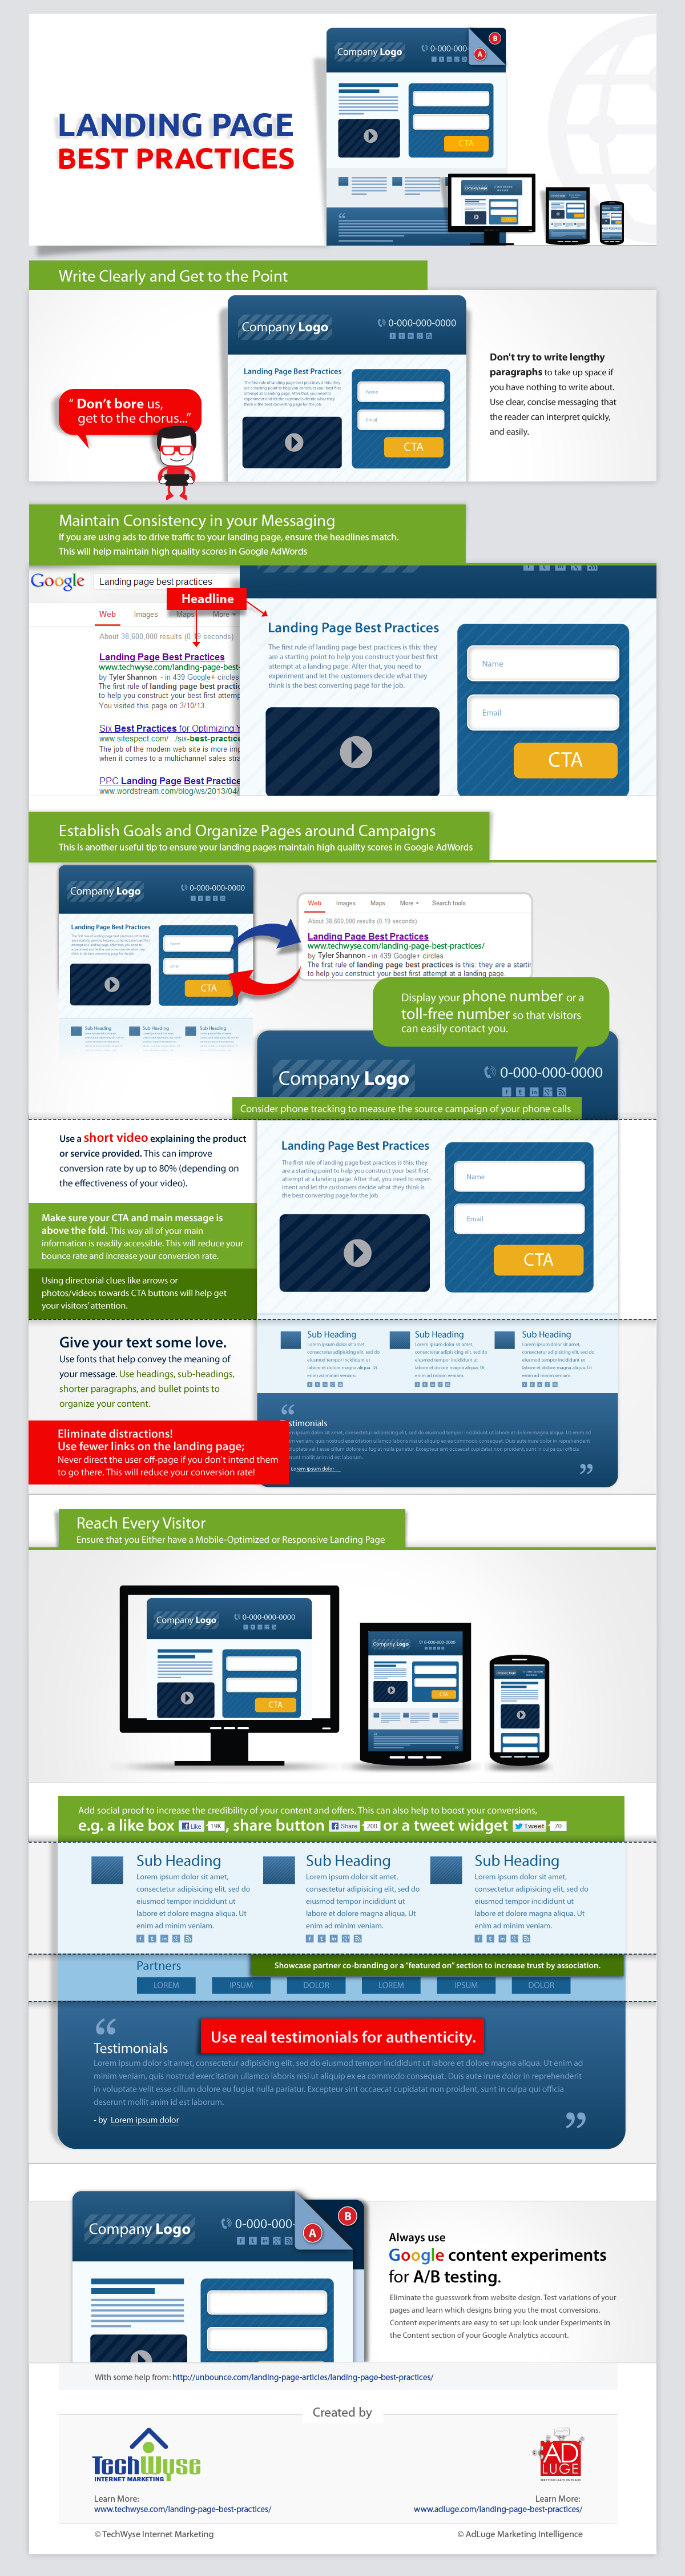 How to Design the Perfect Landing Page